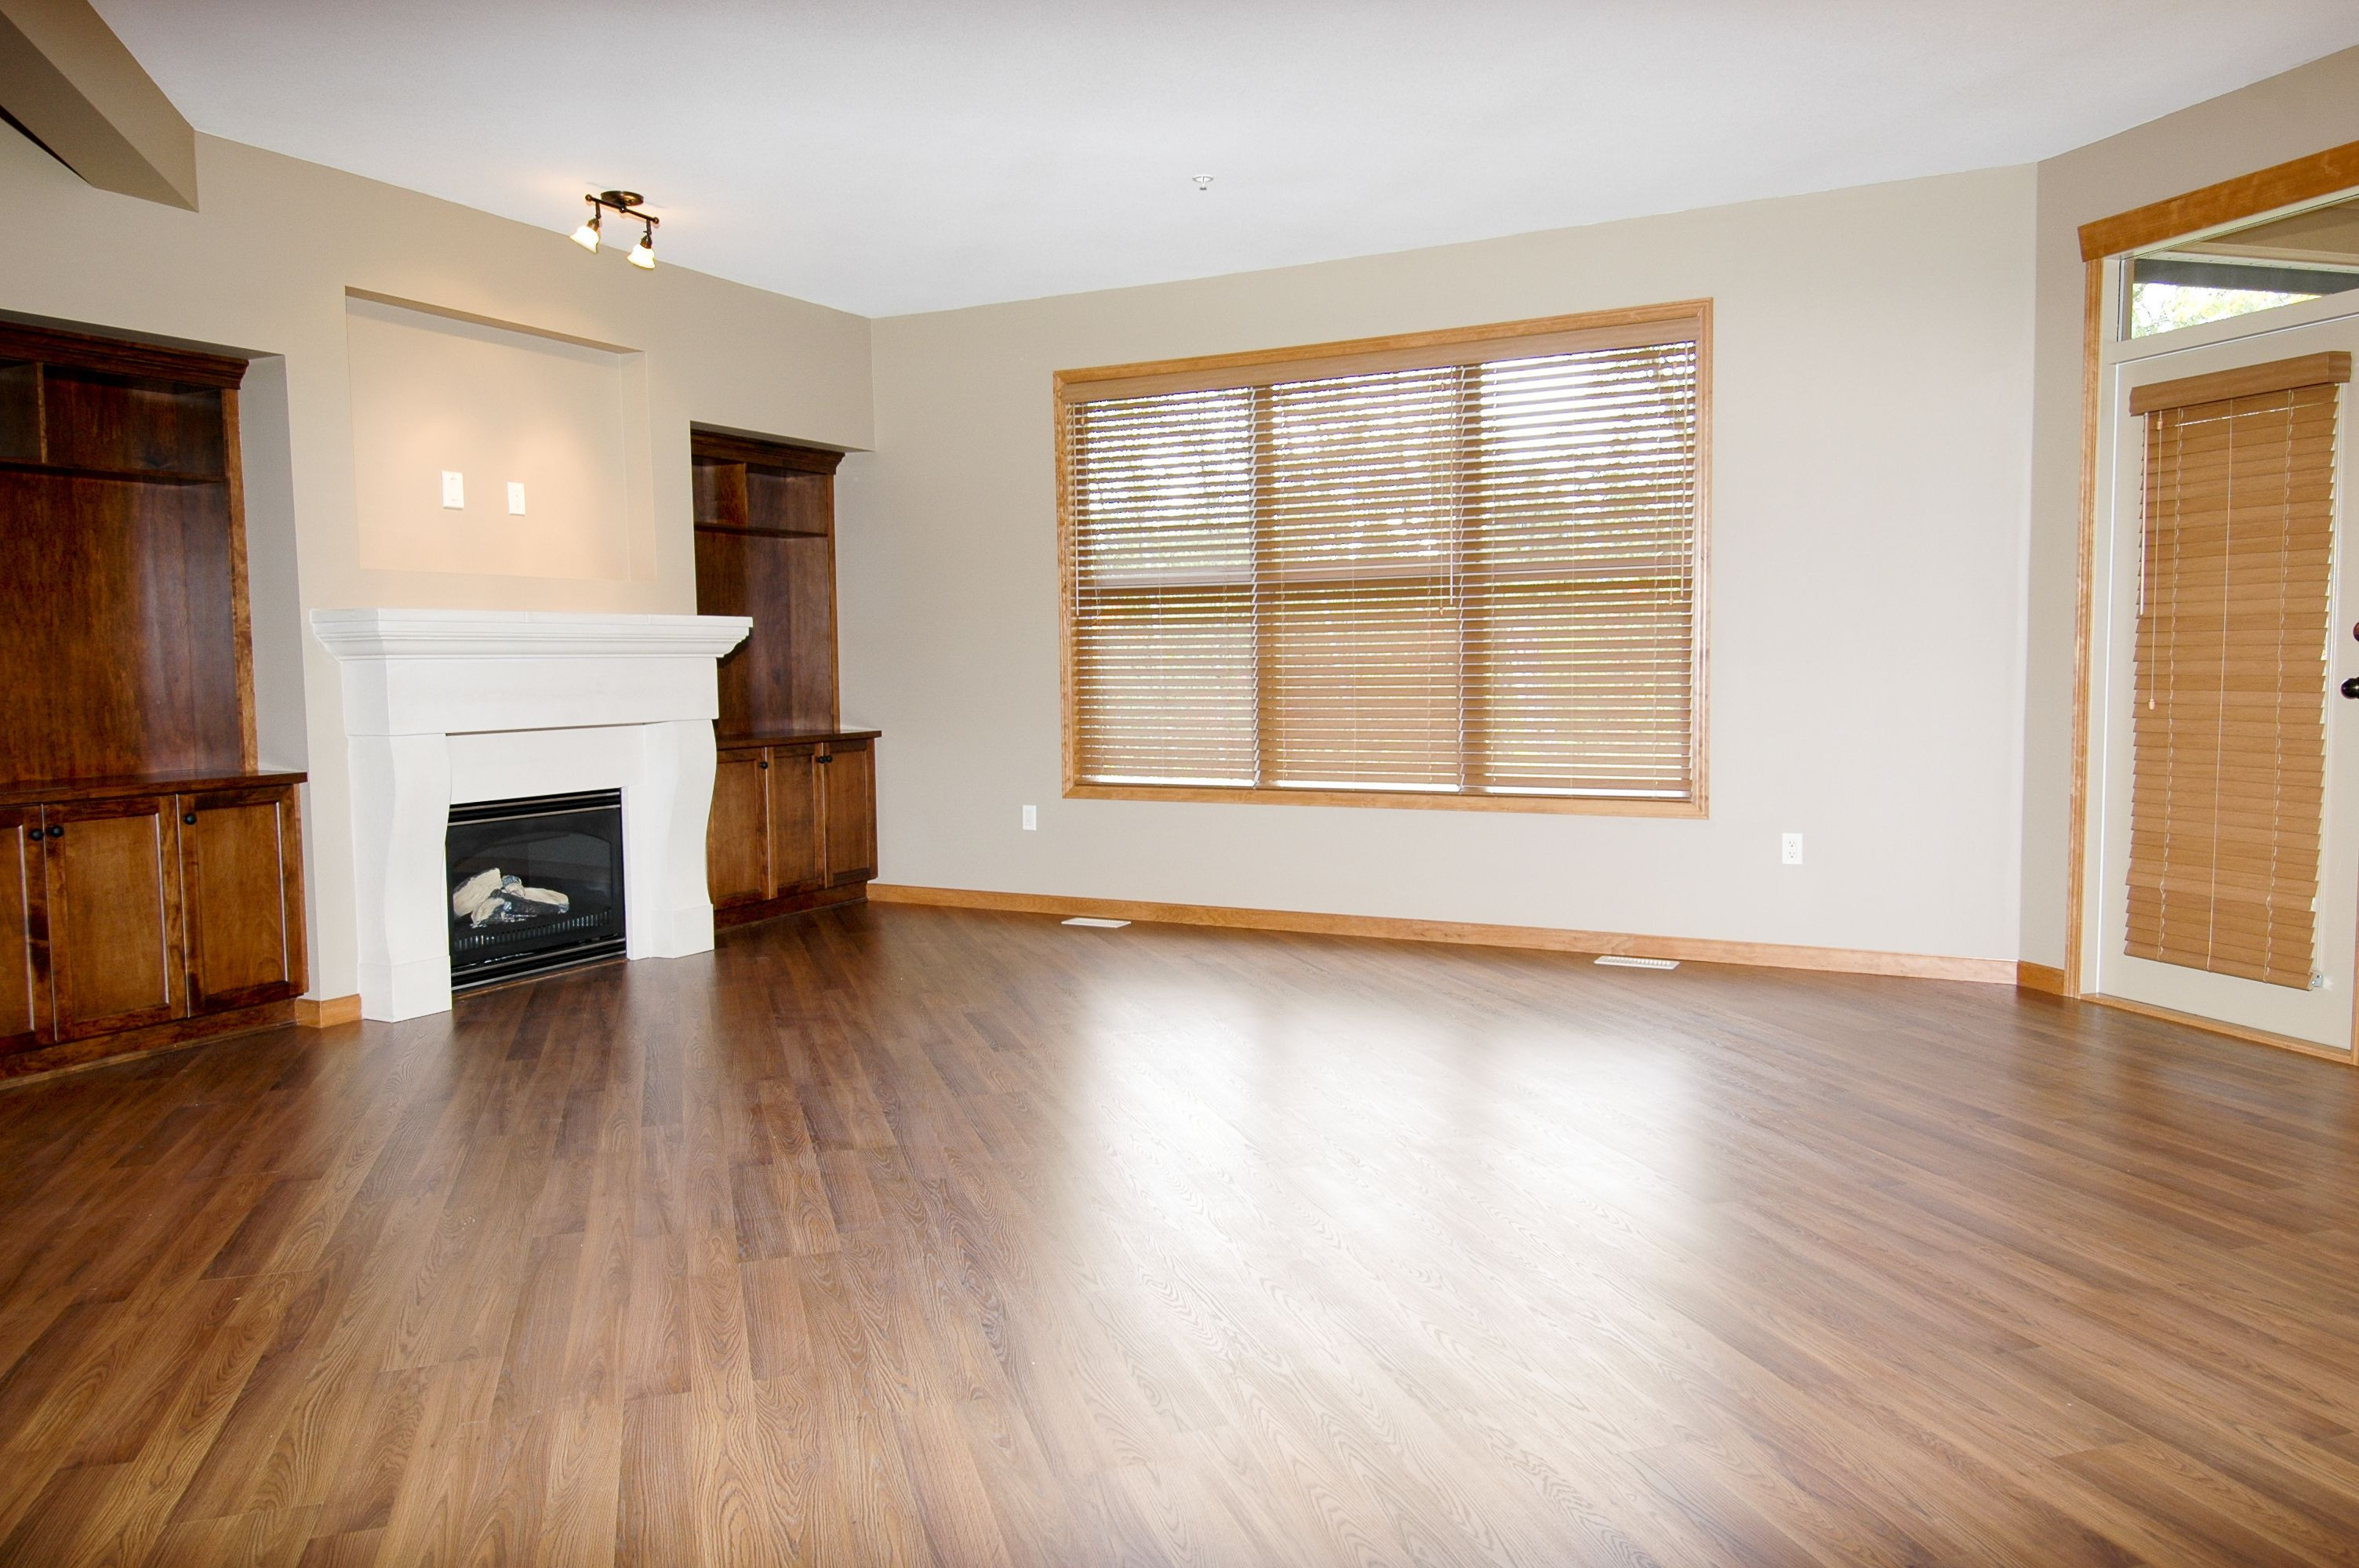 hardwood floors upstairs noise of how to reduce and prevent static on laminate flooring within large empty room with fireplace and wood flooring 172401085 587573903df78c17b6de8379